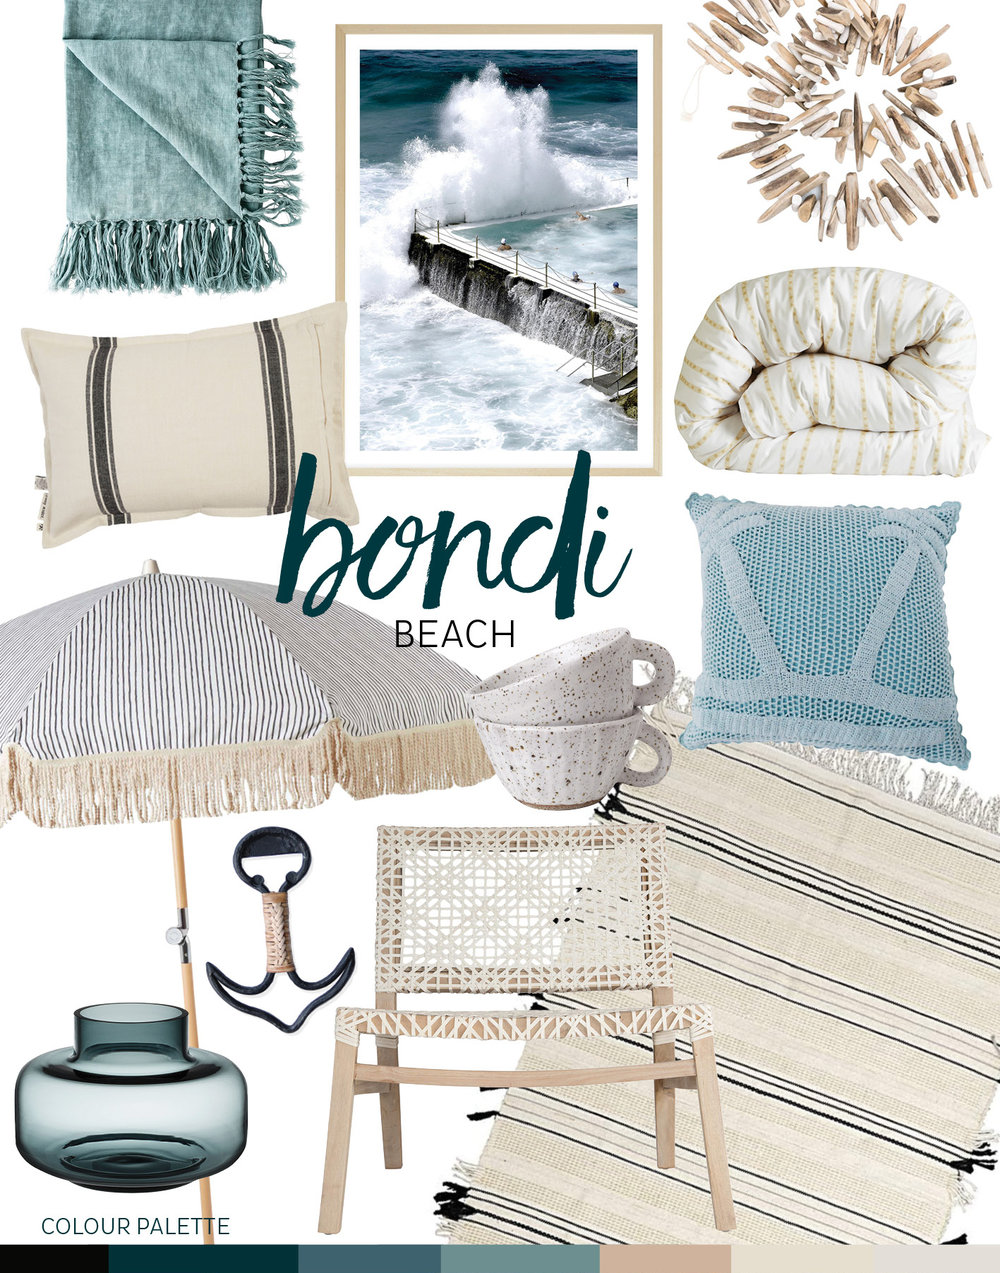 adore_home_blog_bondi_beach_blue_neutral_natural_soothing_colour_palette_homewares_coastal_style.jpg